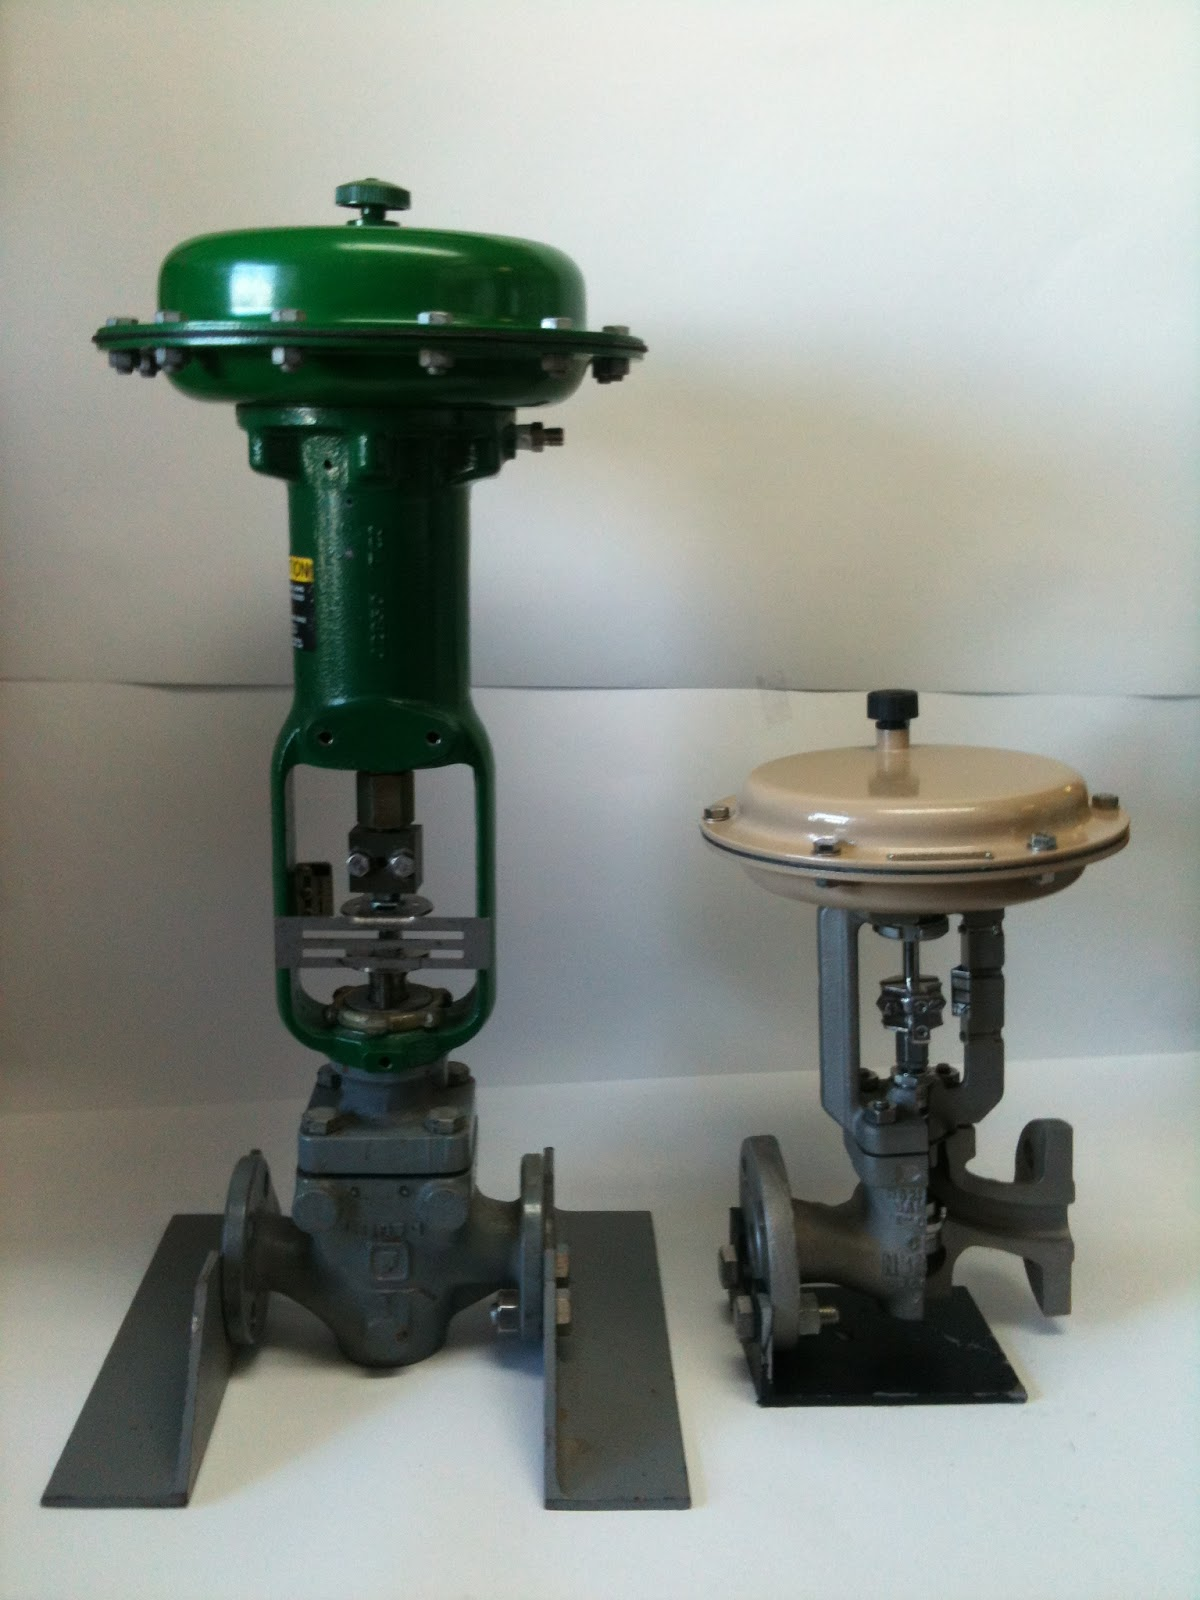 Height and weight savings with samson controls 3241 control valve height and weight savings with samson controls 3241 control valve nvjuhfo Choice Image